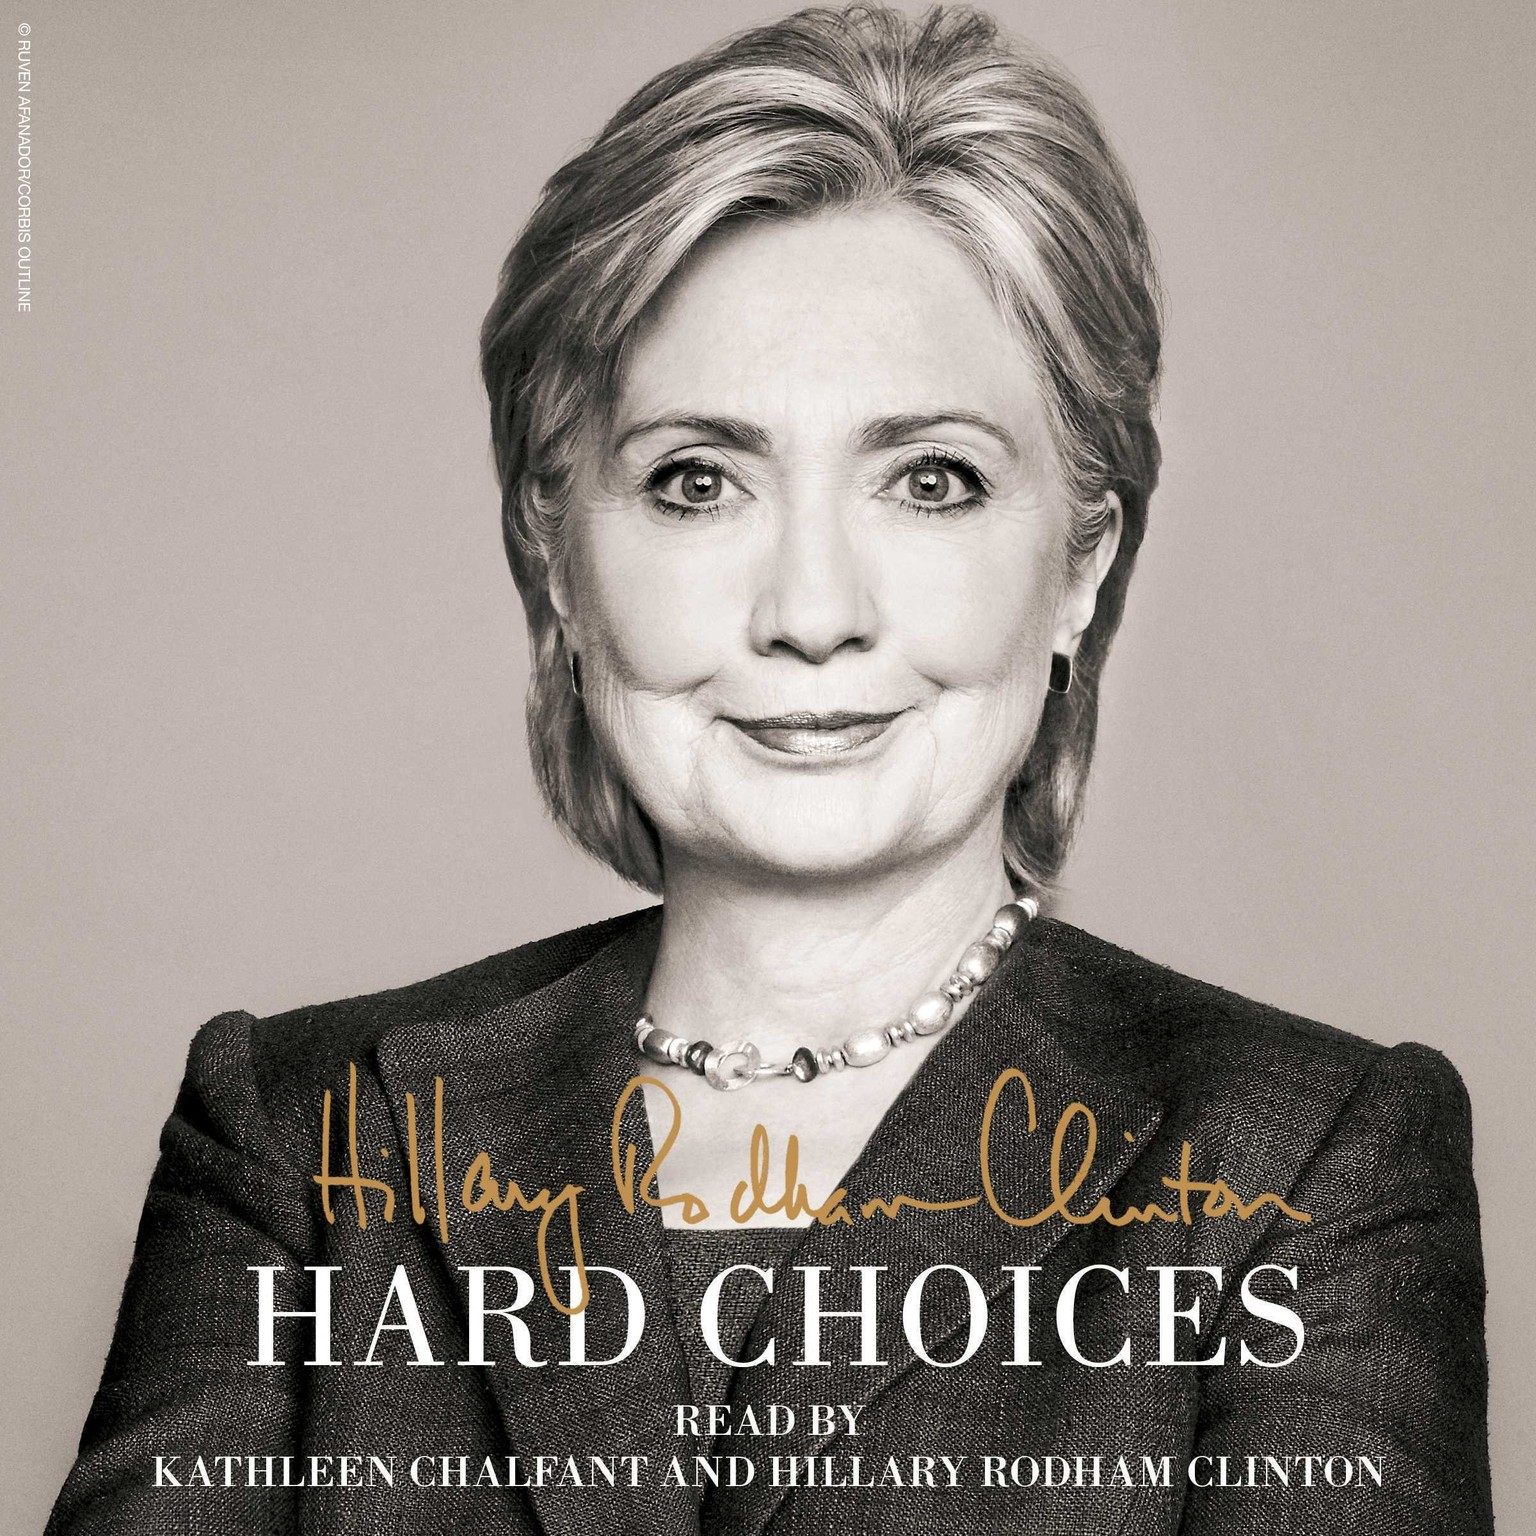 Printable Hard Choices: A Memoir Audiobook Cover Art